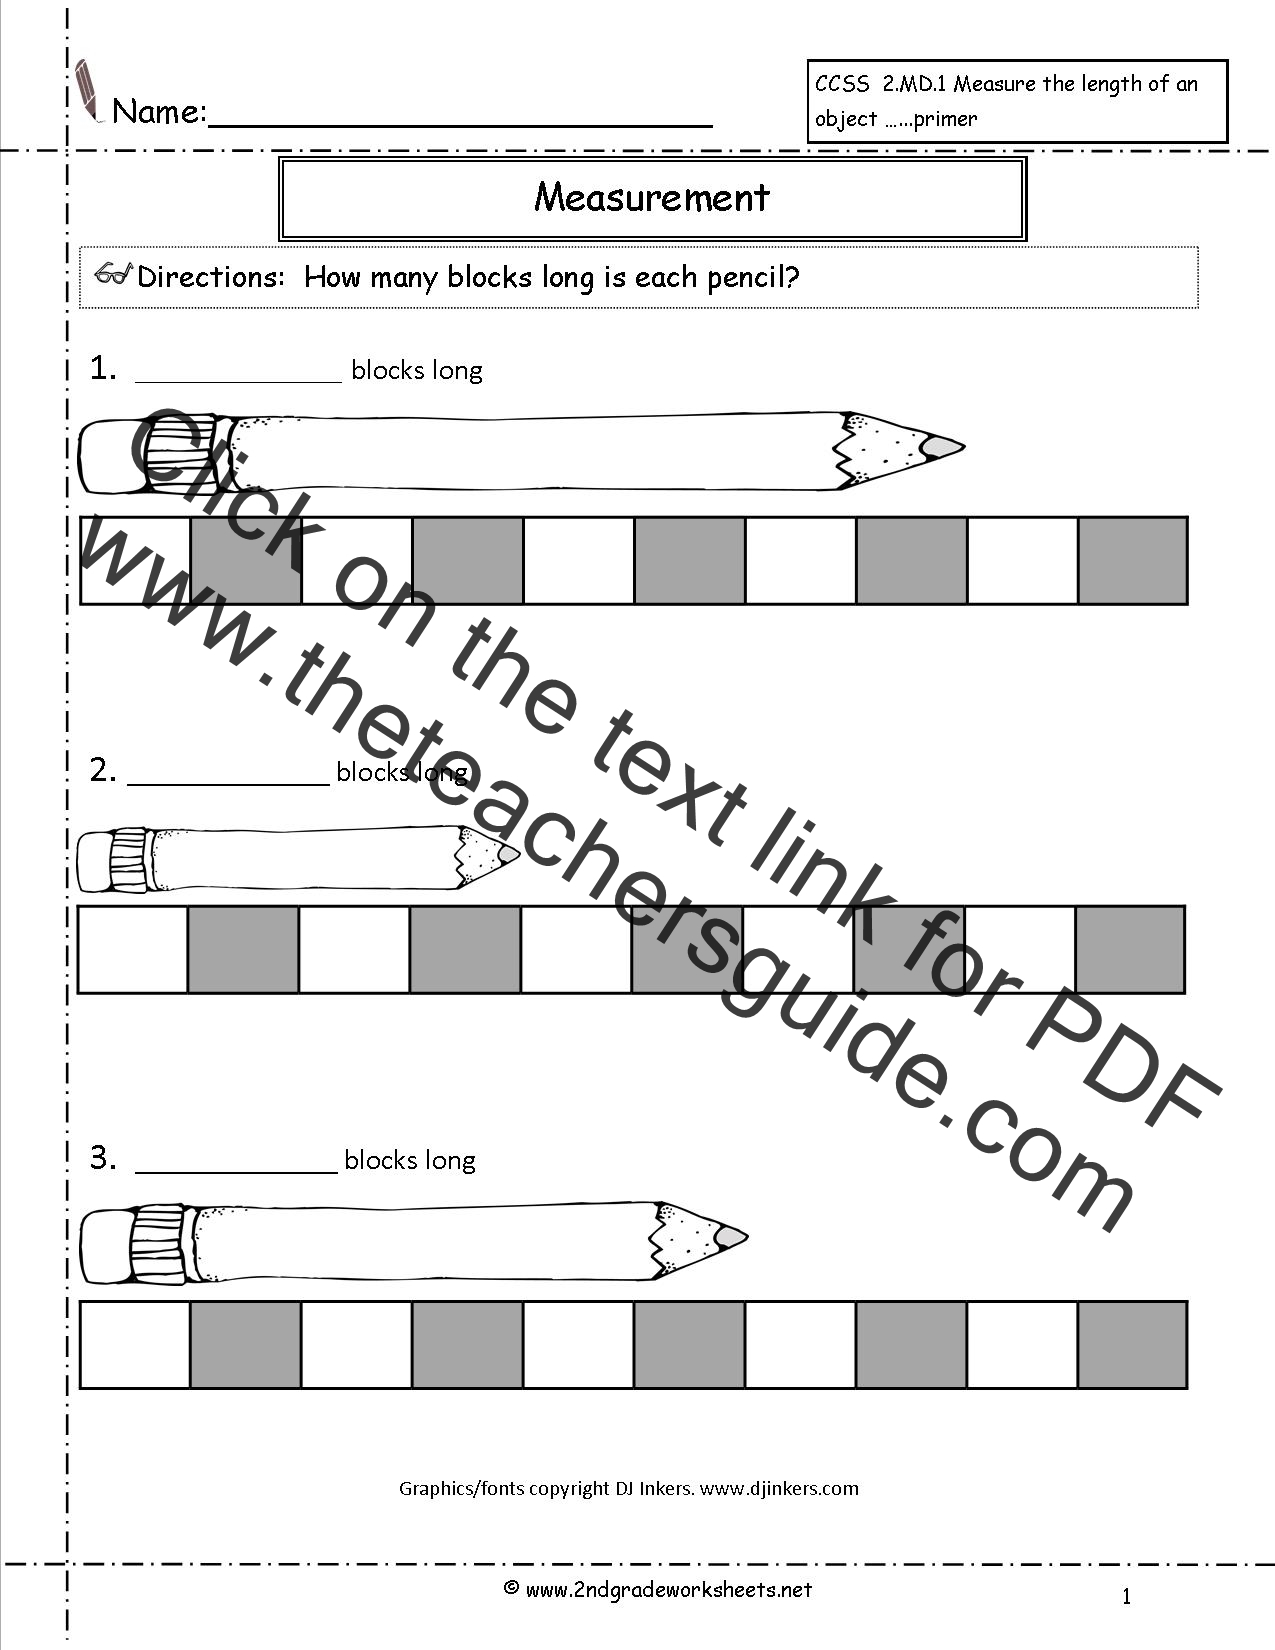 CCSS 2MD1 Worksheets Measuring Worksheets – Measuring Worksheets for 2nd Grade